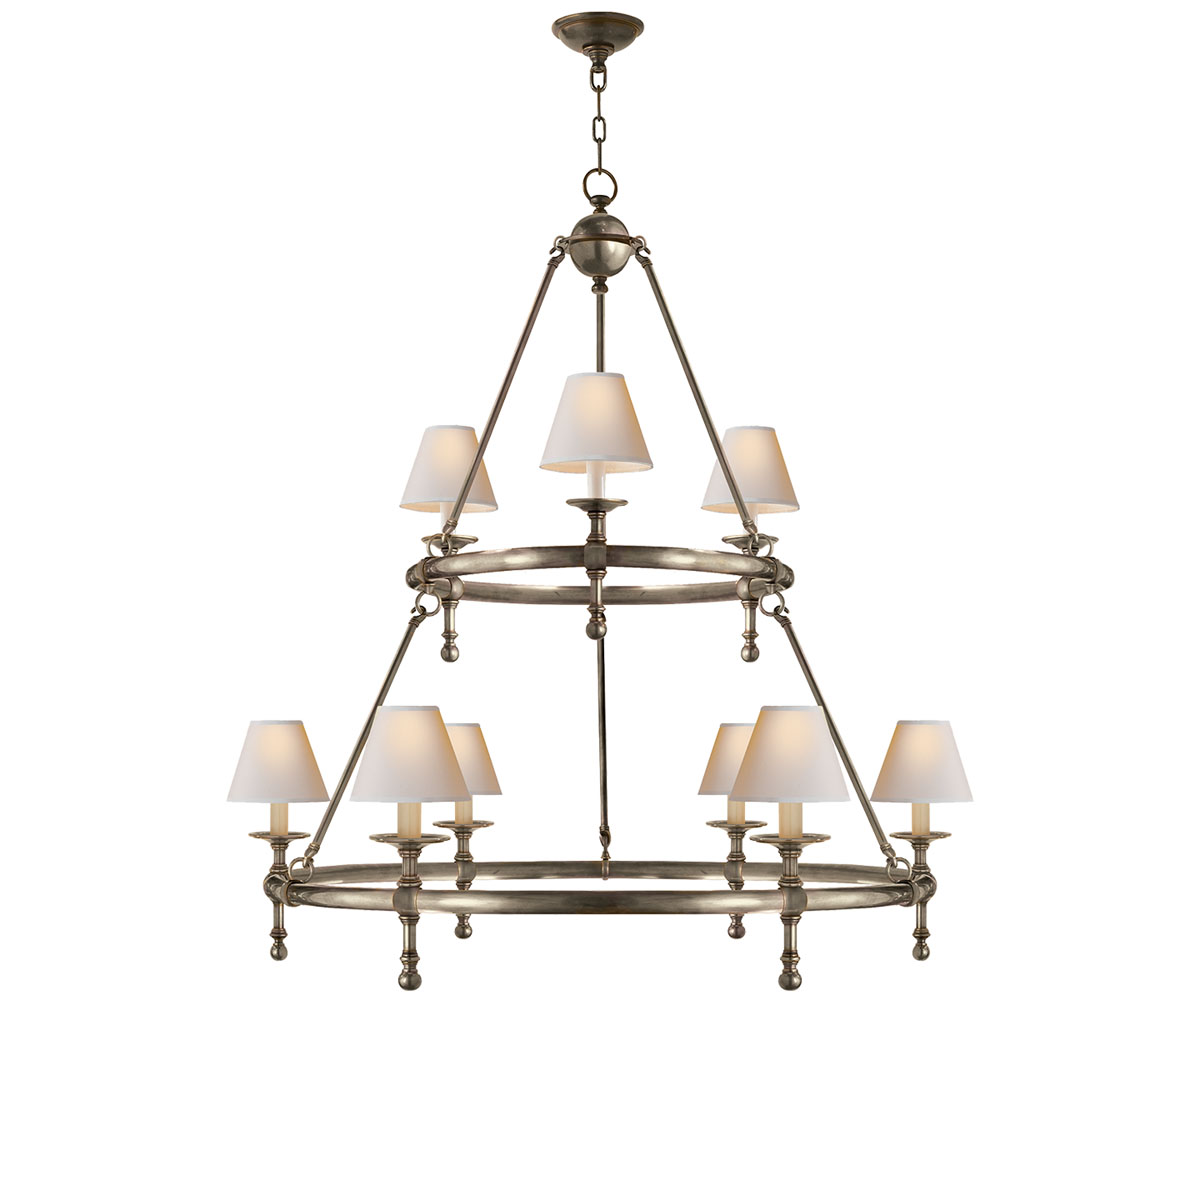 Visual Comfort Classic Two Tier Ring Chandeliers Neenas